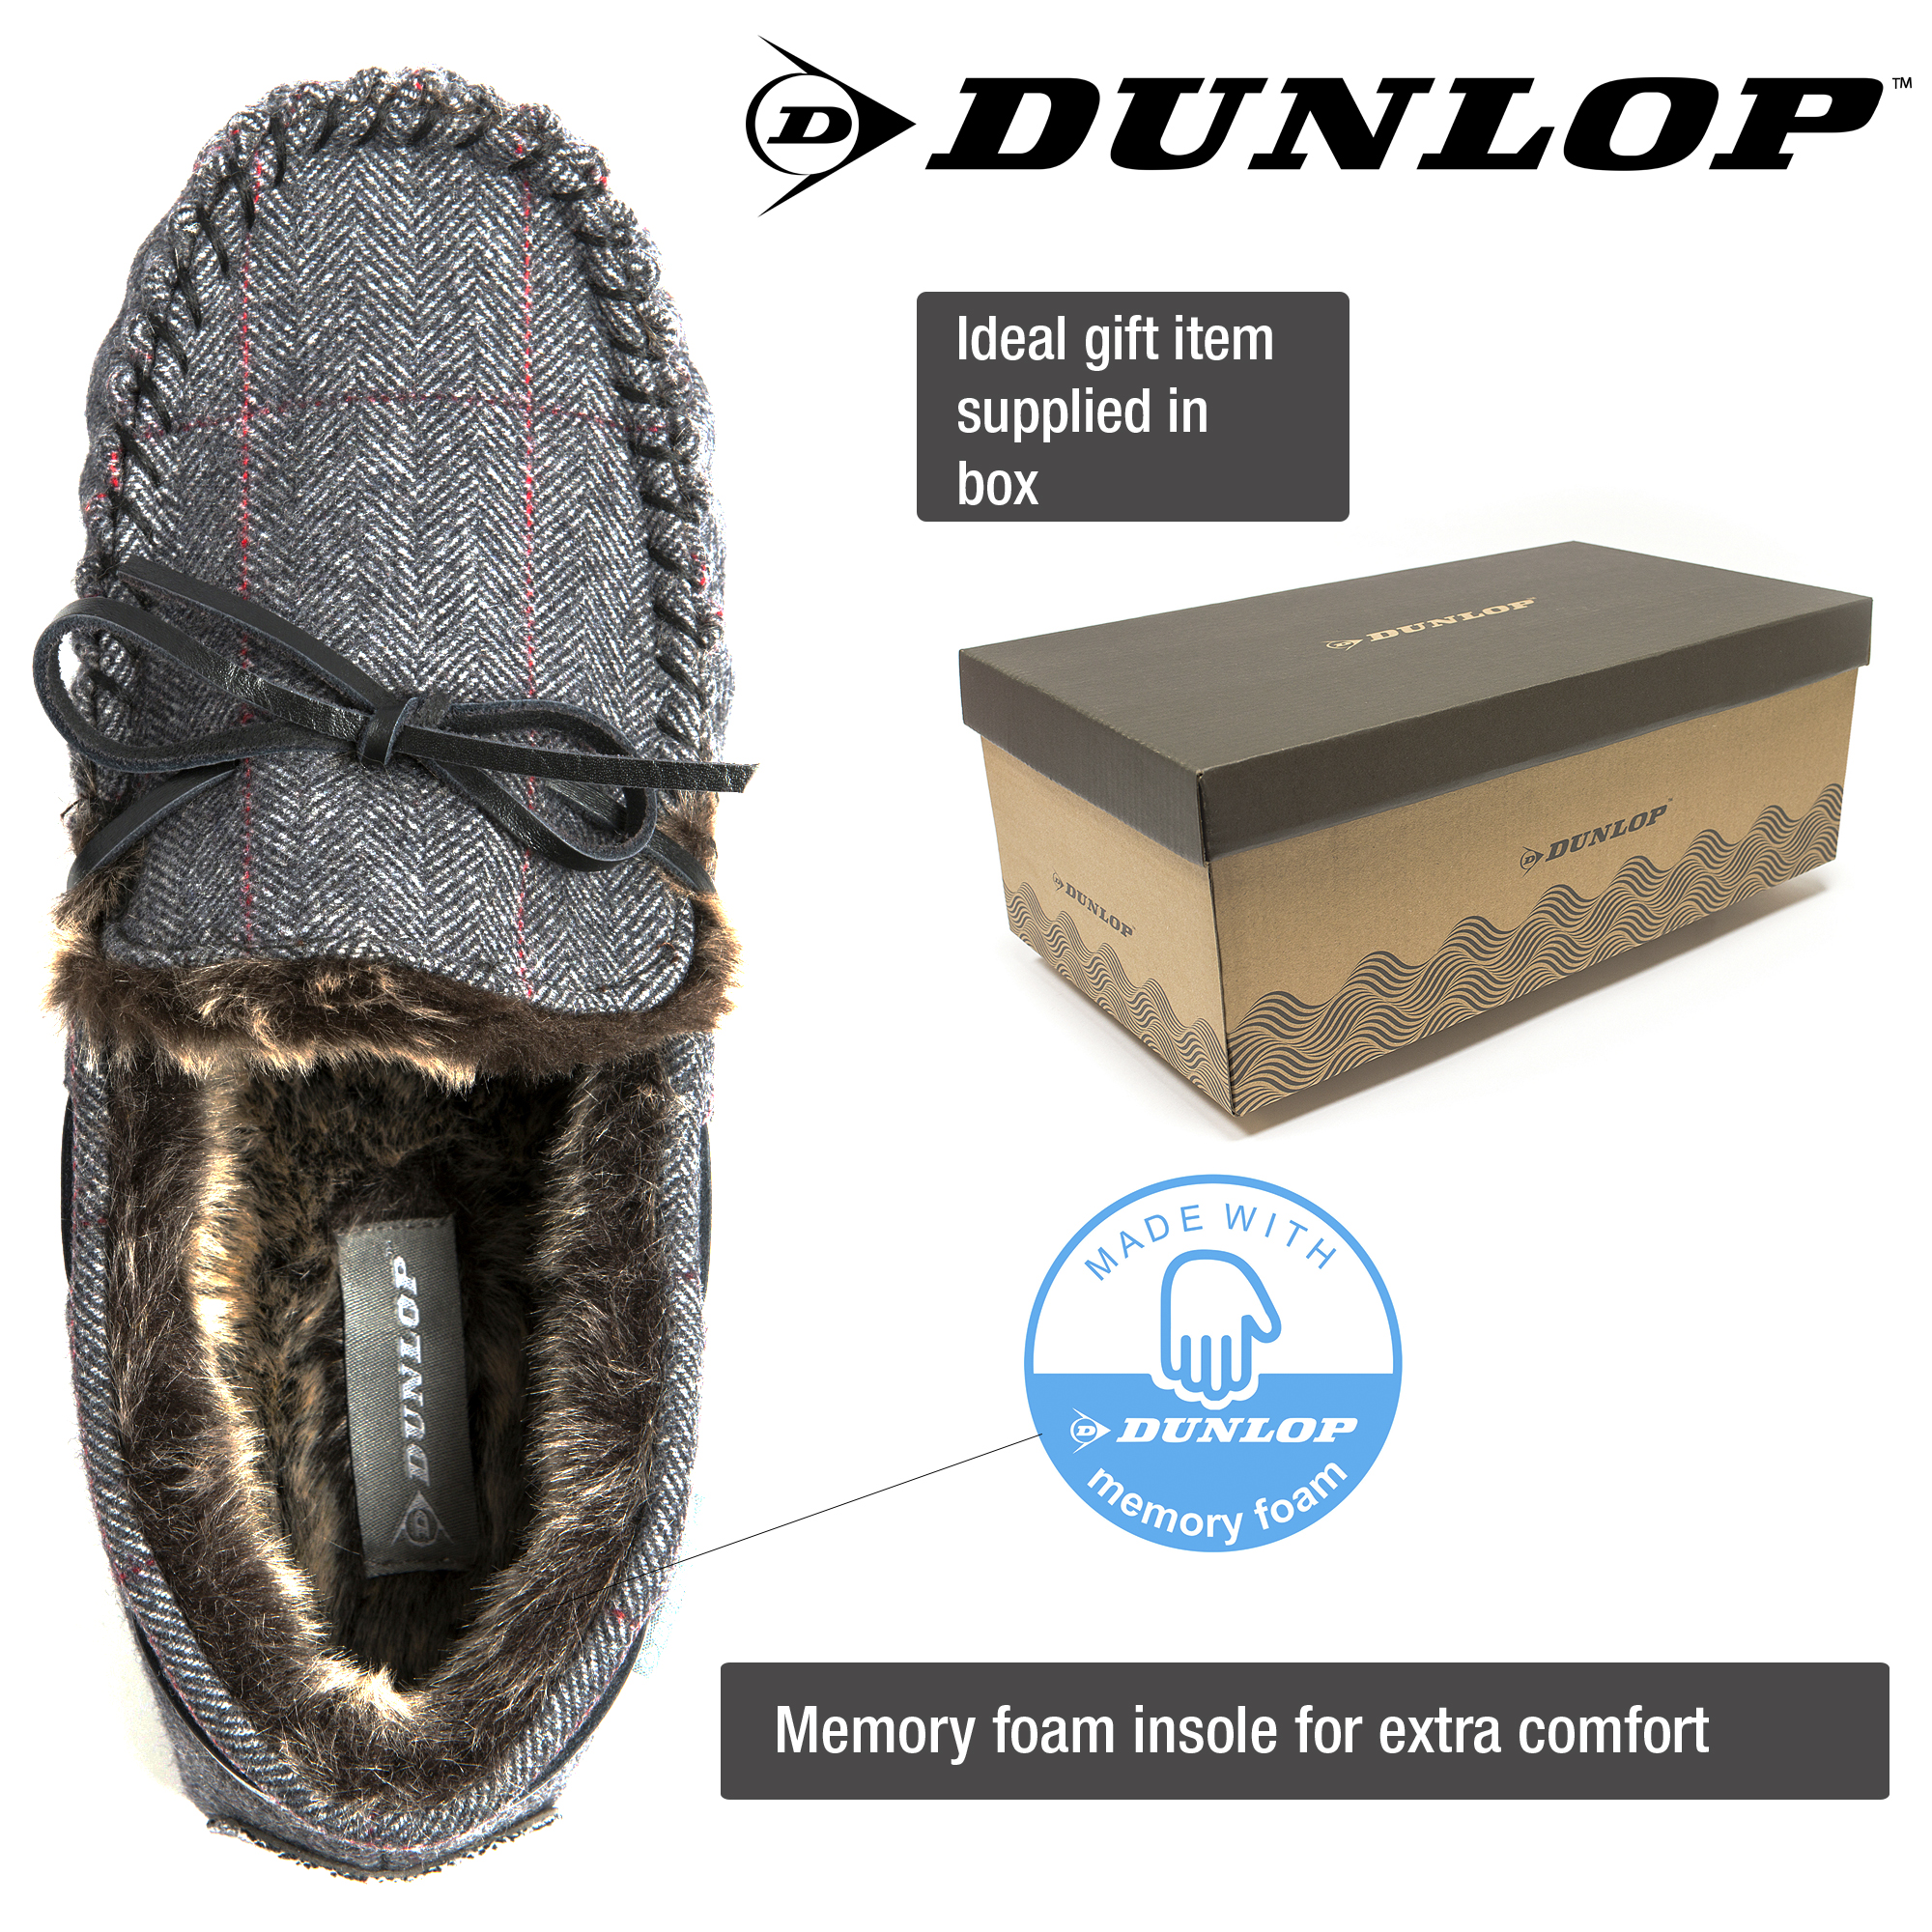 DUNLOP MENS MOCCASIN GENTS SLIPPERS FAUX FUR LINED COMFY MEMORY FOAM SIZES 7-12